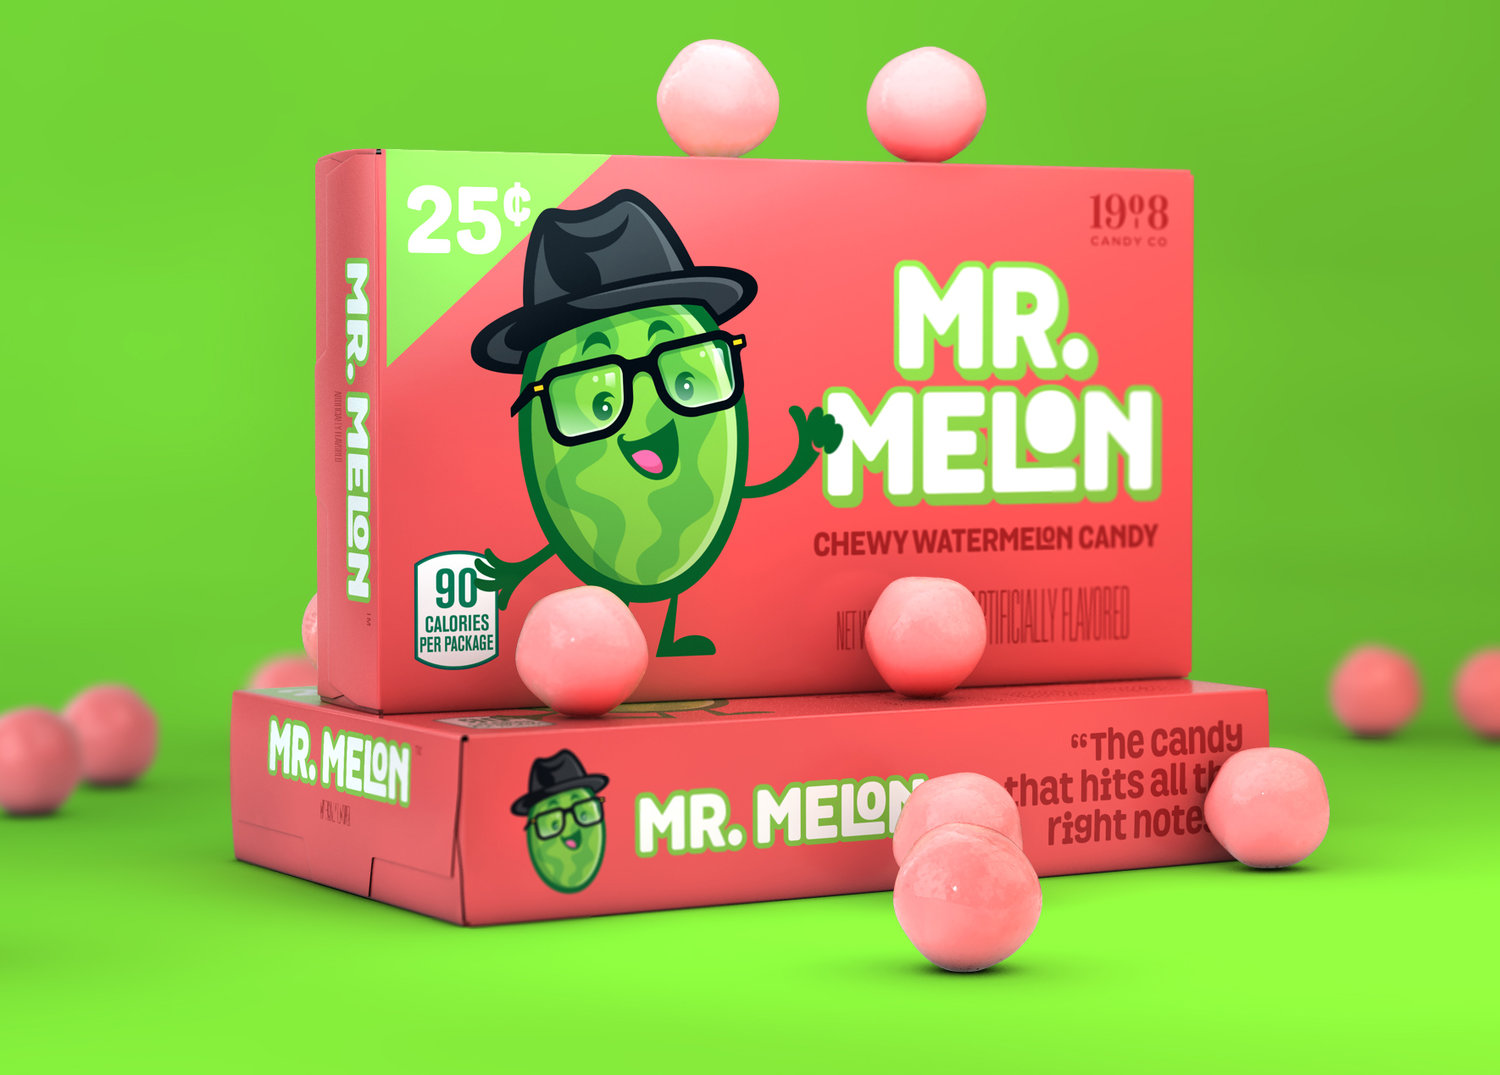 'Mr. Melon' Brand Character & Packaging